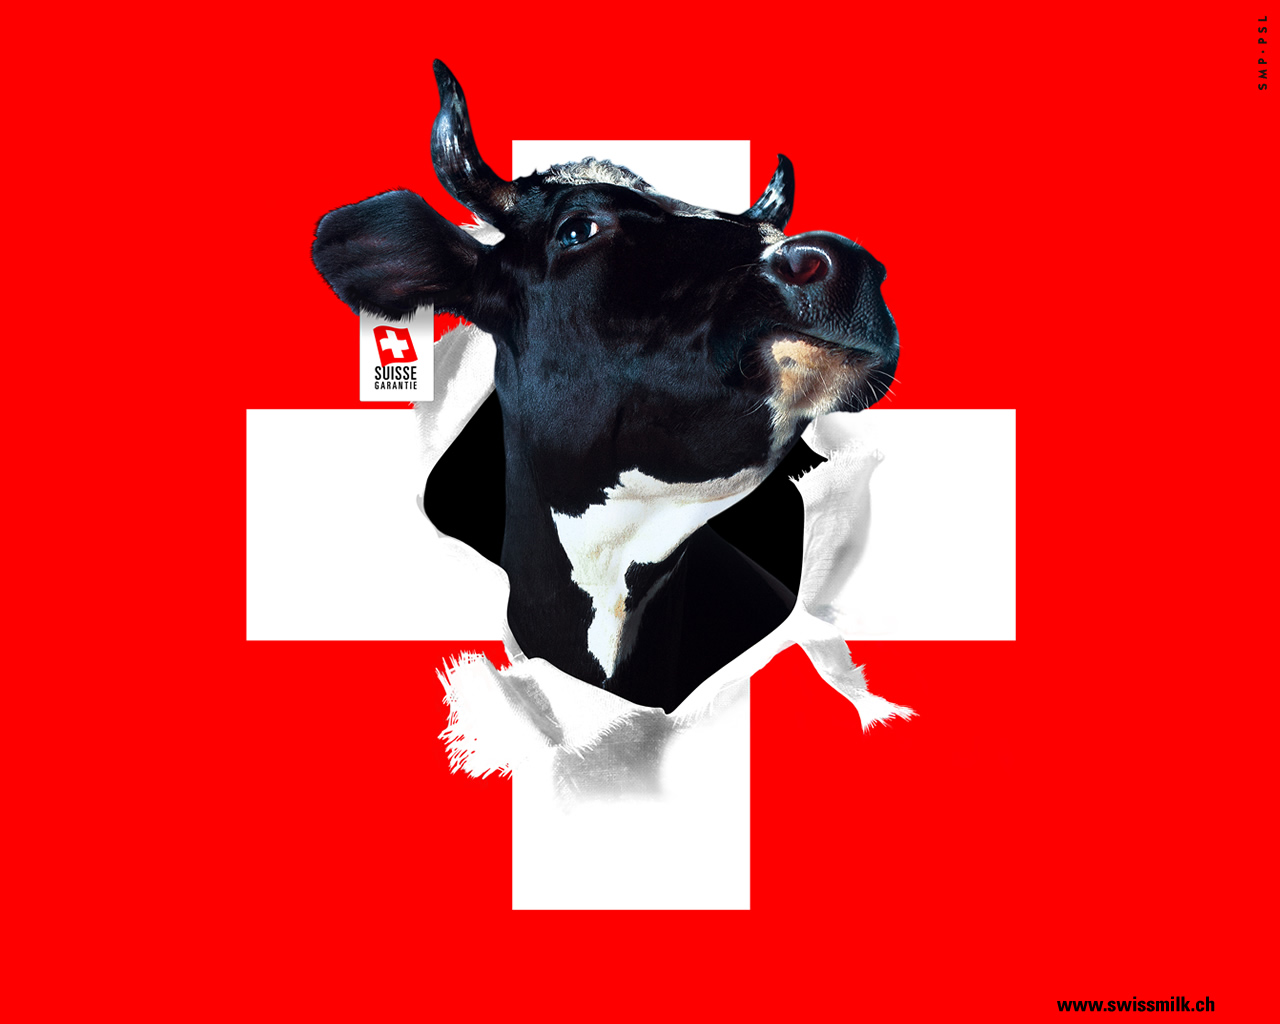 http://football.suisse-blog.ch/public/Photo/fond-ecran-drapeau-suisse.jpg